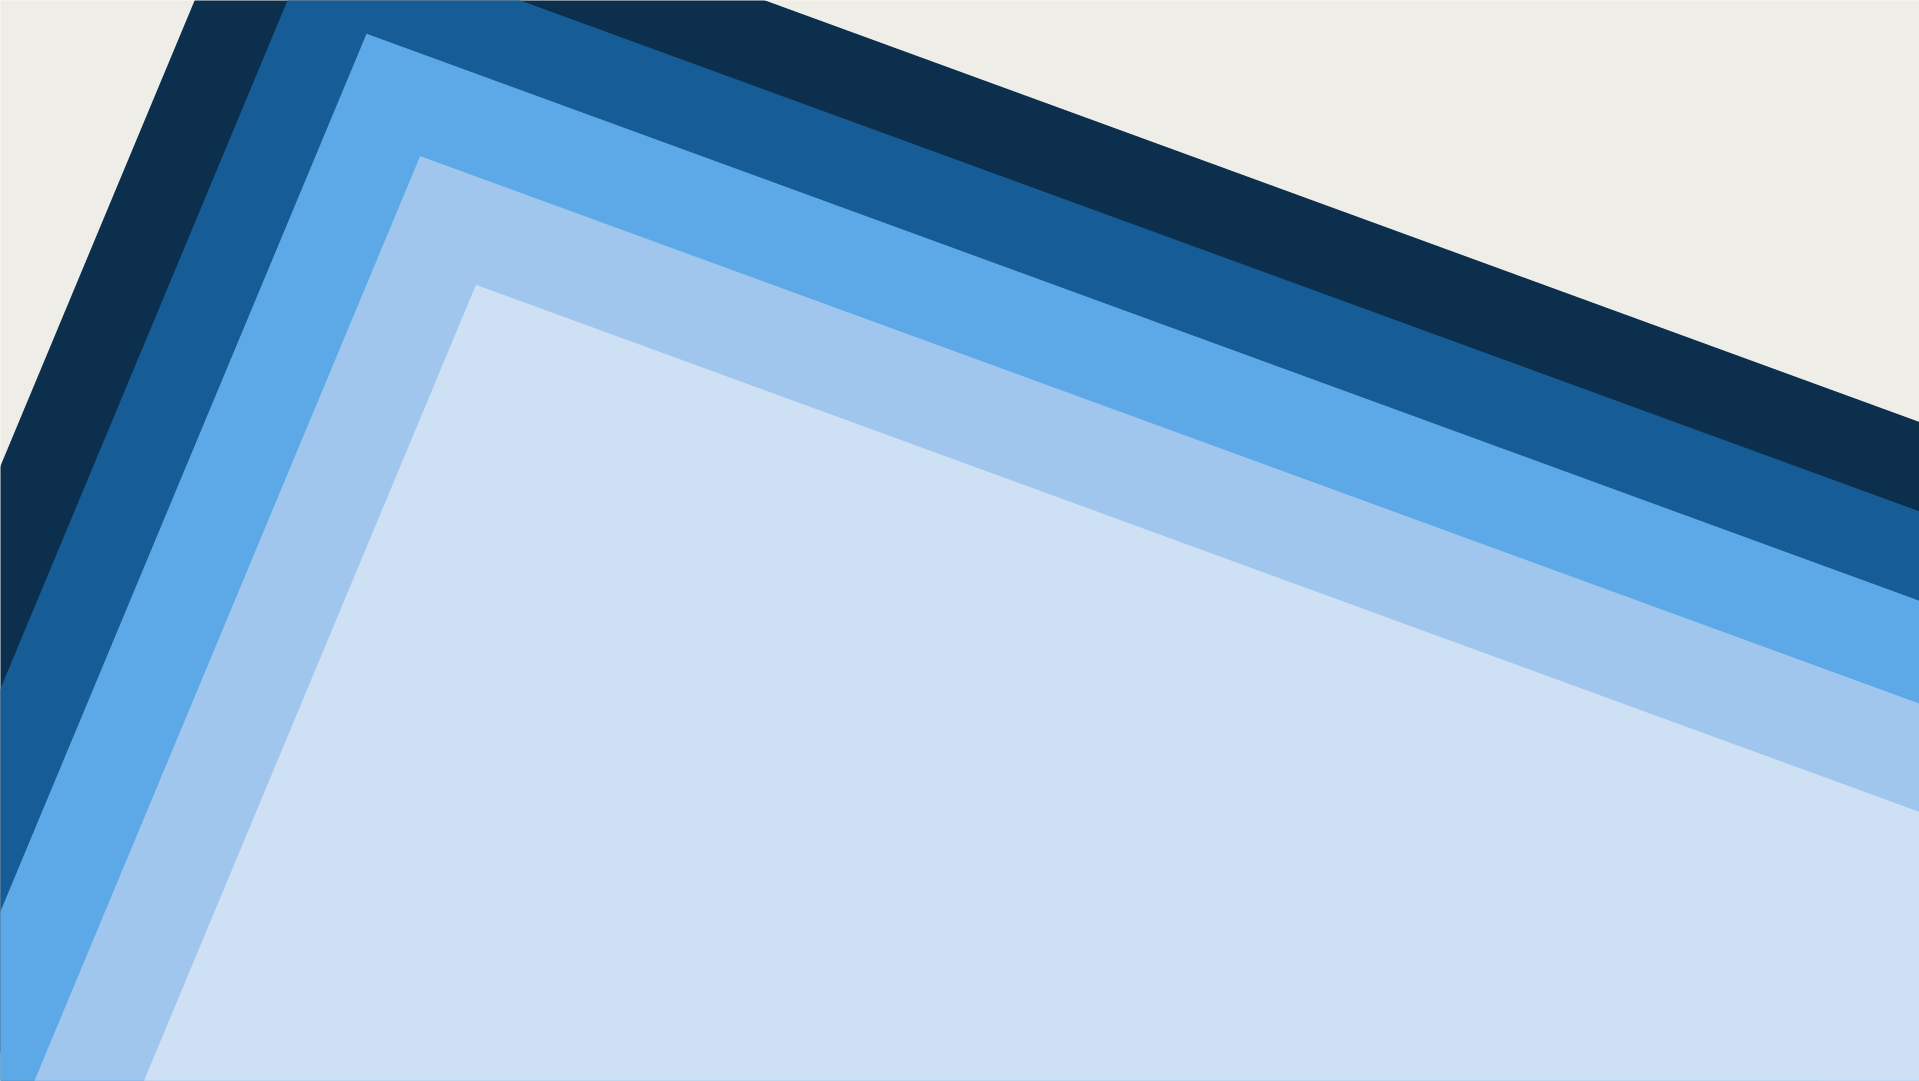 Decorative graphic with rotated blue rectangles